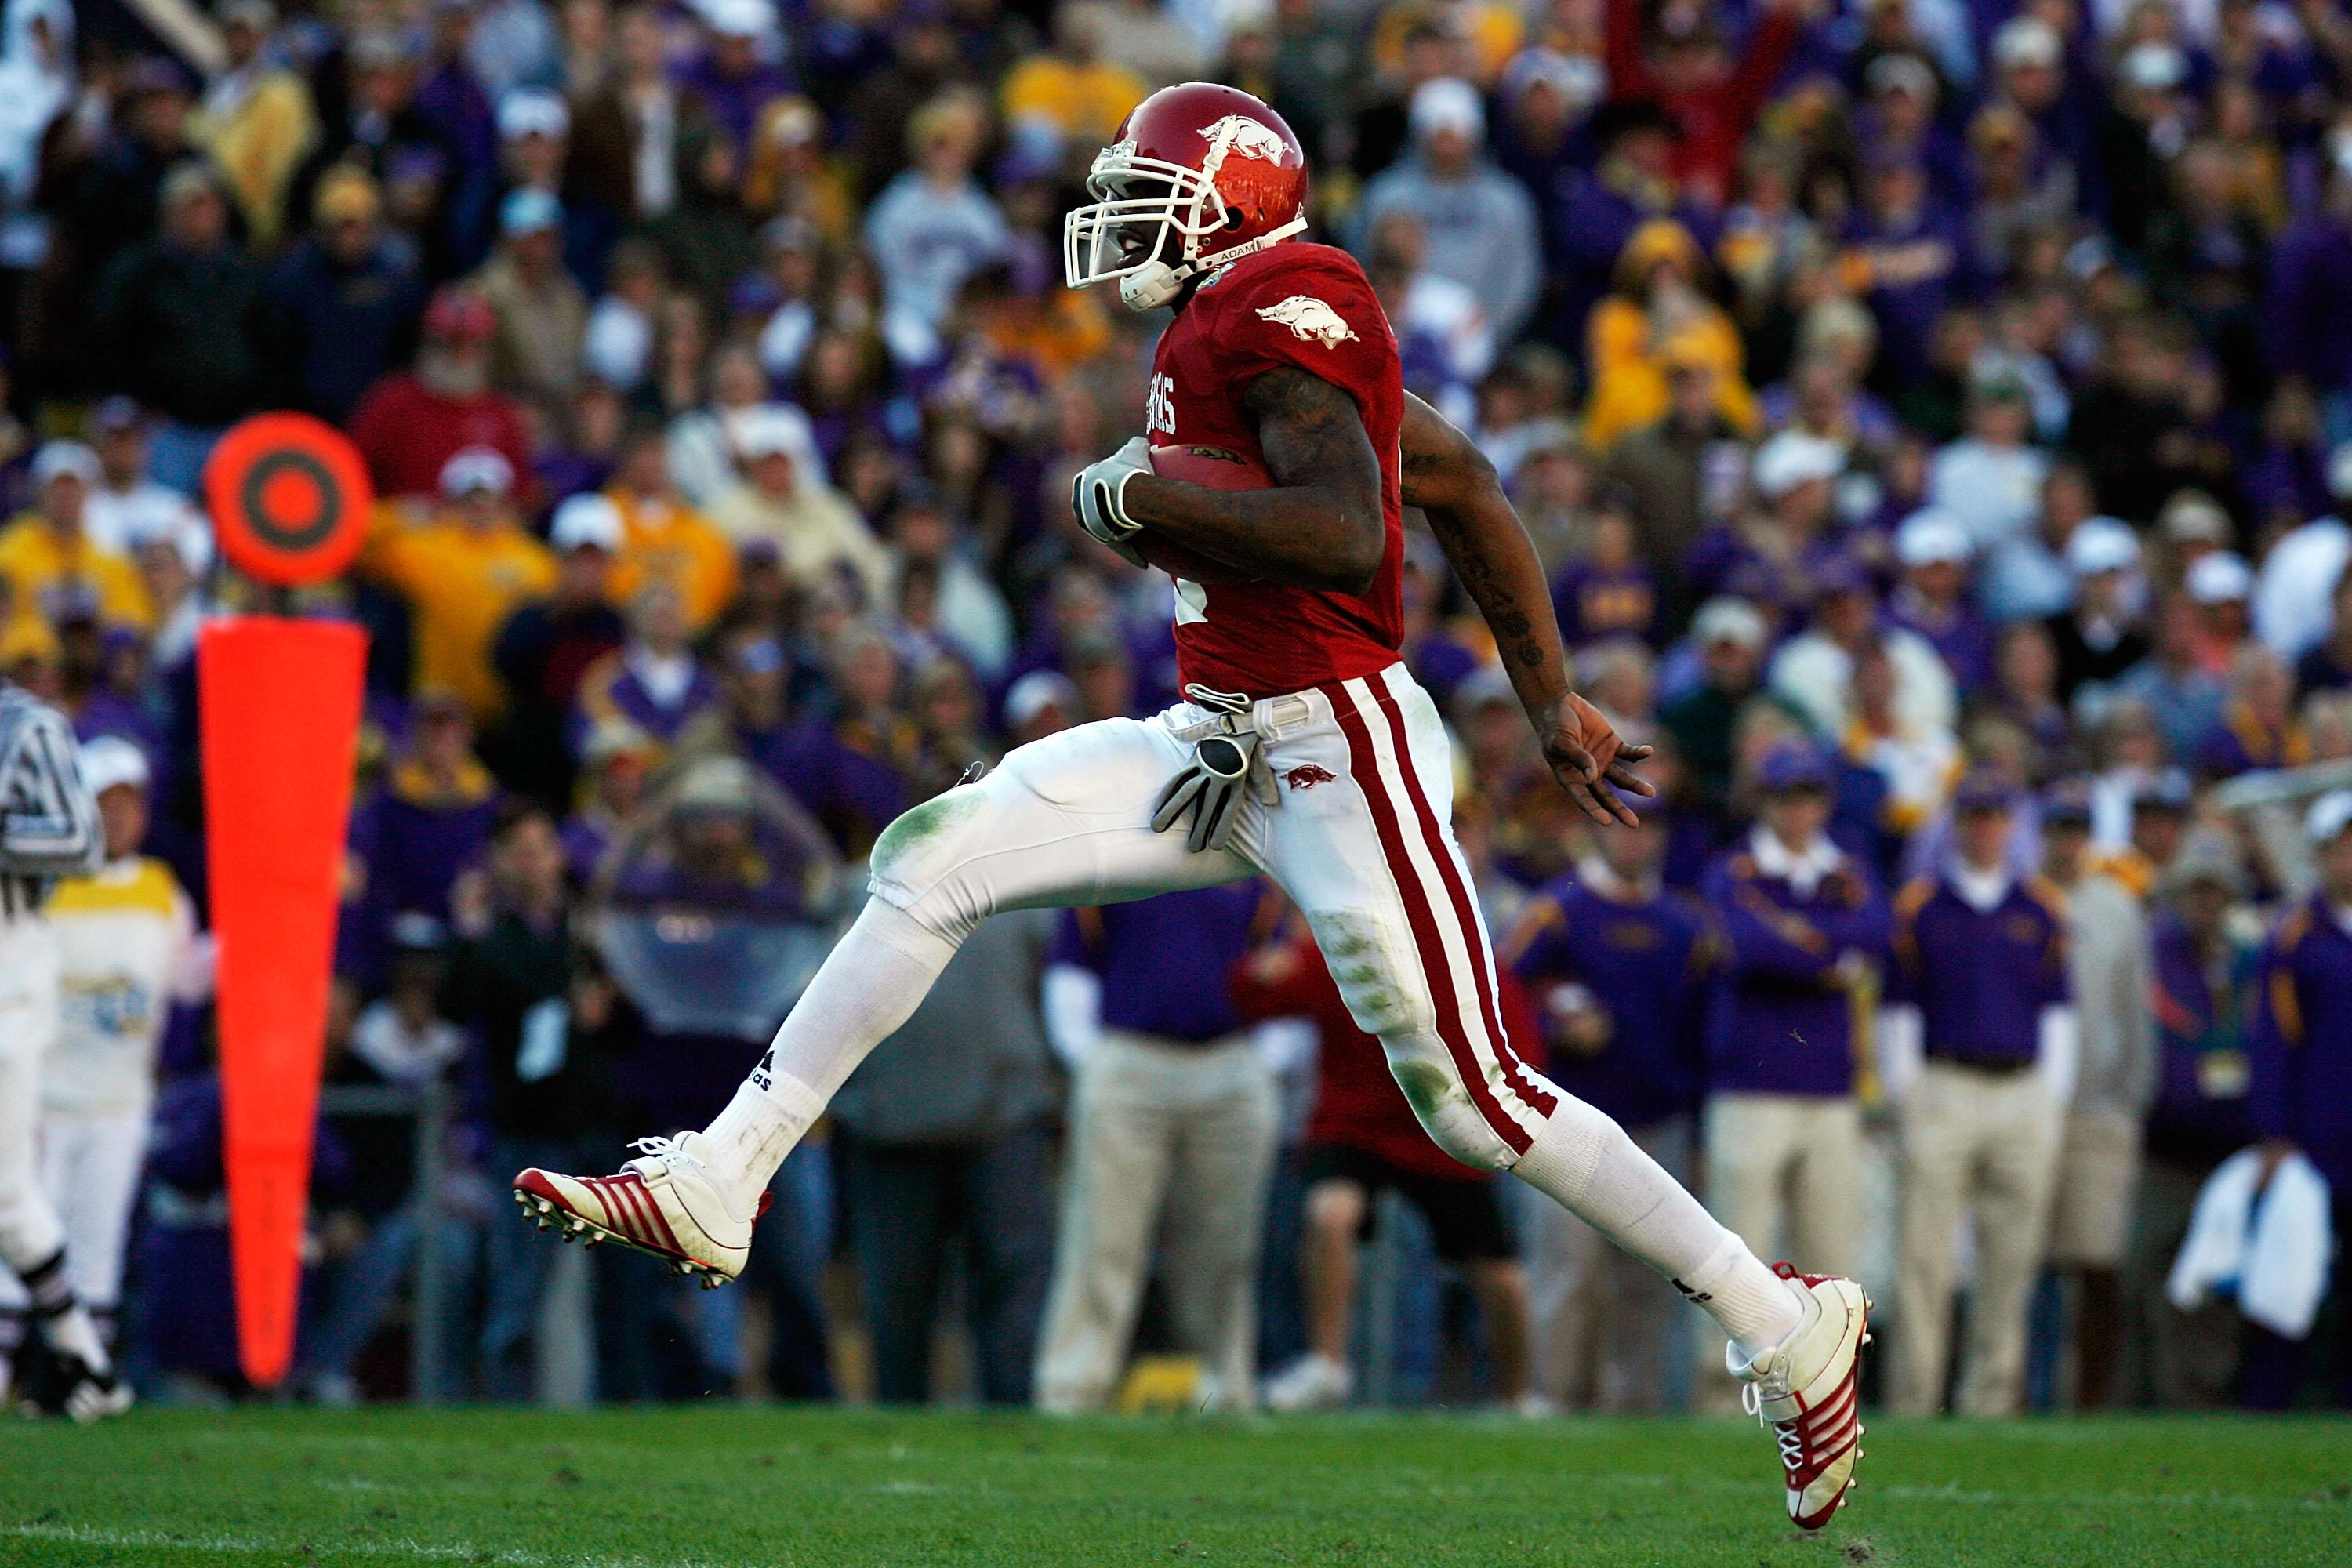 Darren McFadden, then of the Arkansas Razorbacks, runs for a touchdown against the Louisiana State University Tigers to score a touchdown at Tiger Stadium Nov. 23, 2007, in Baton Rouge, Louisiana.